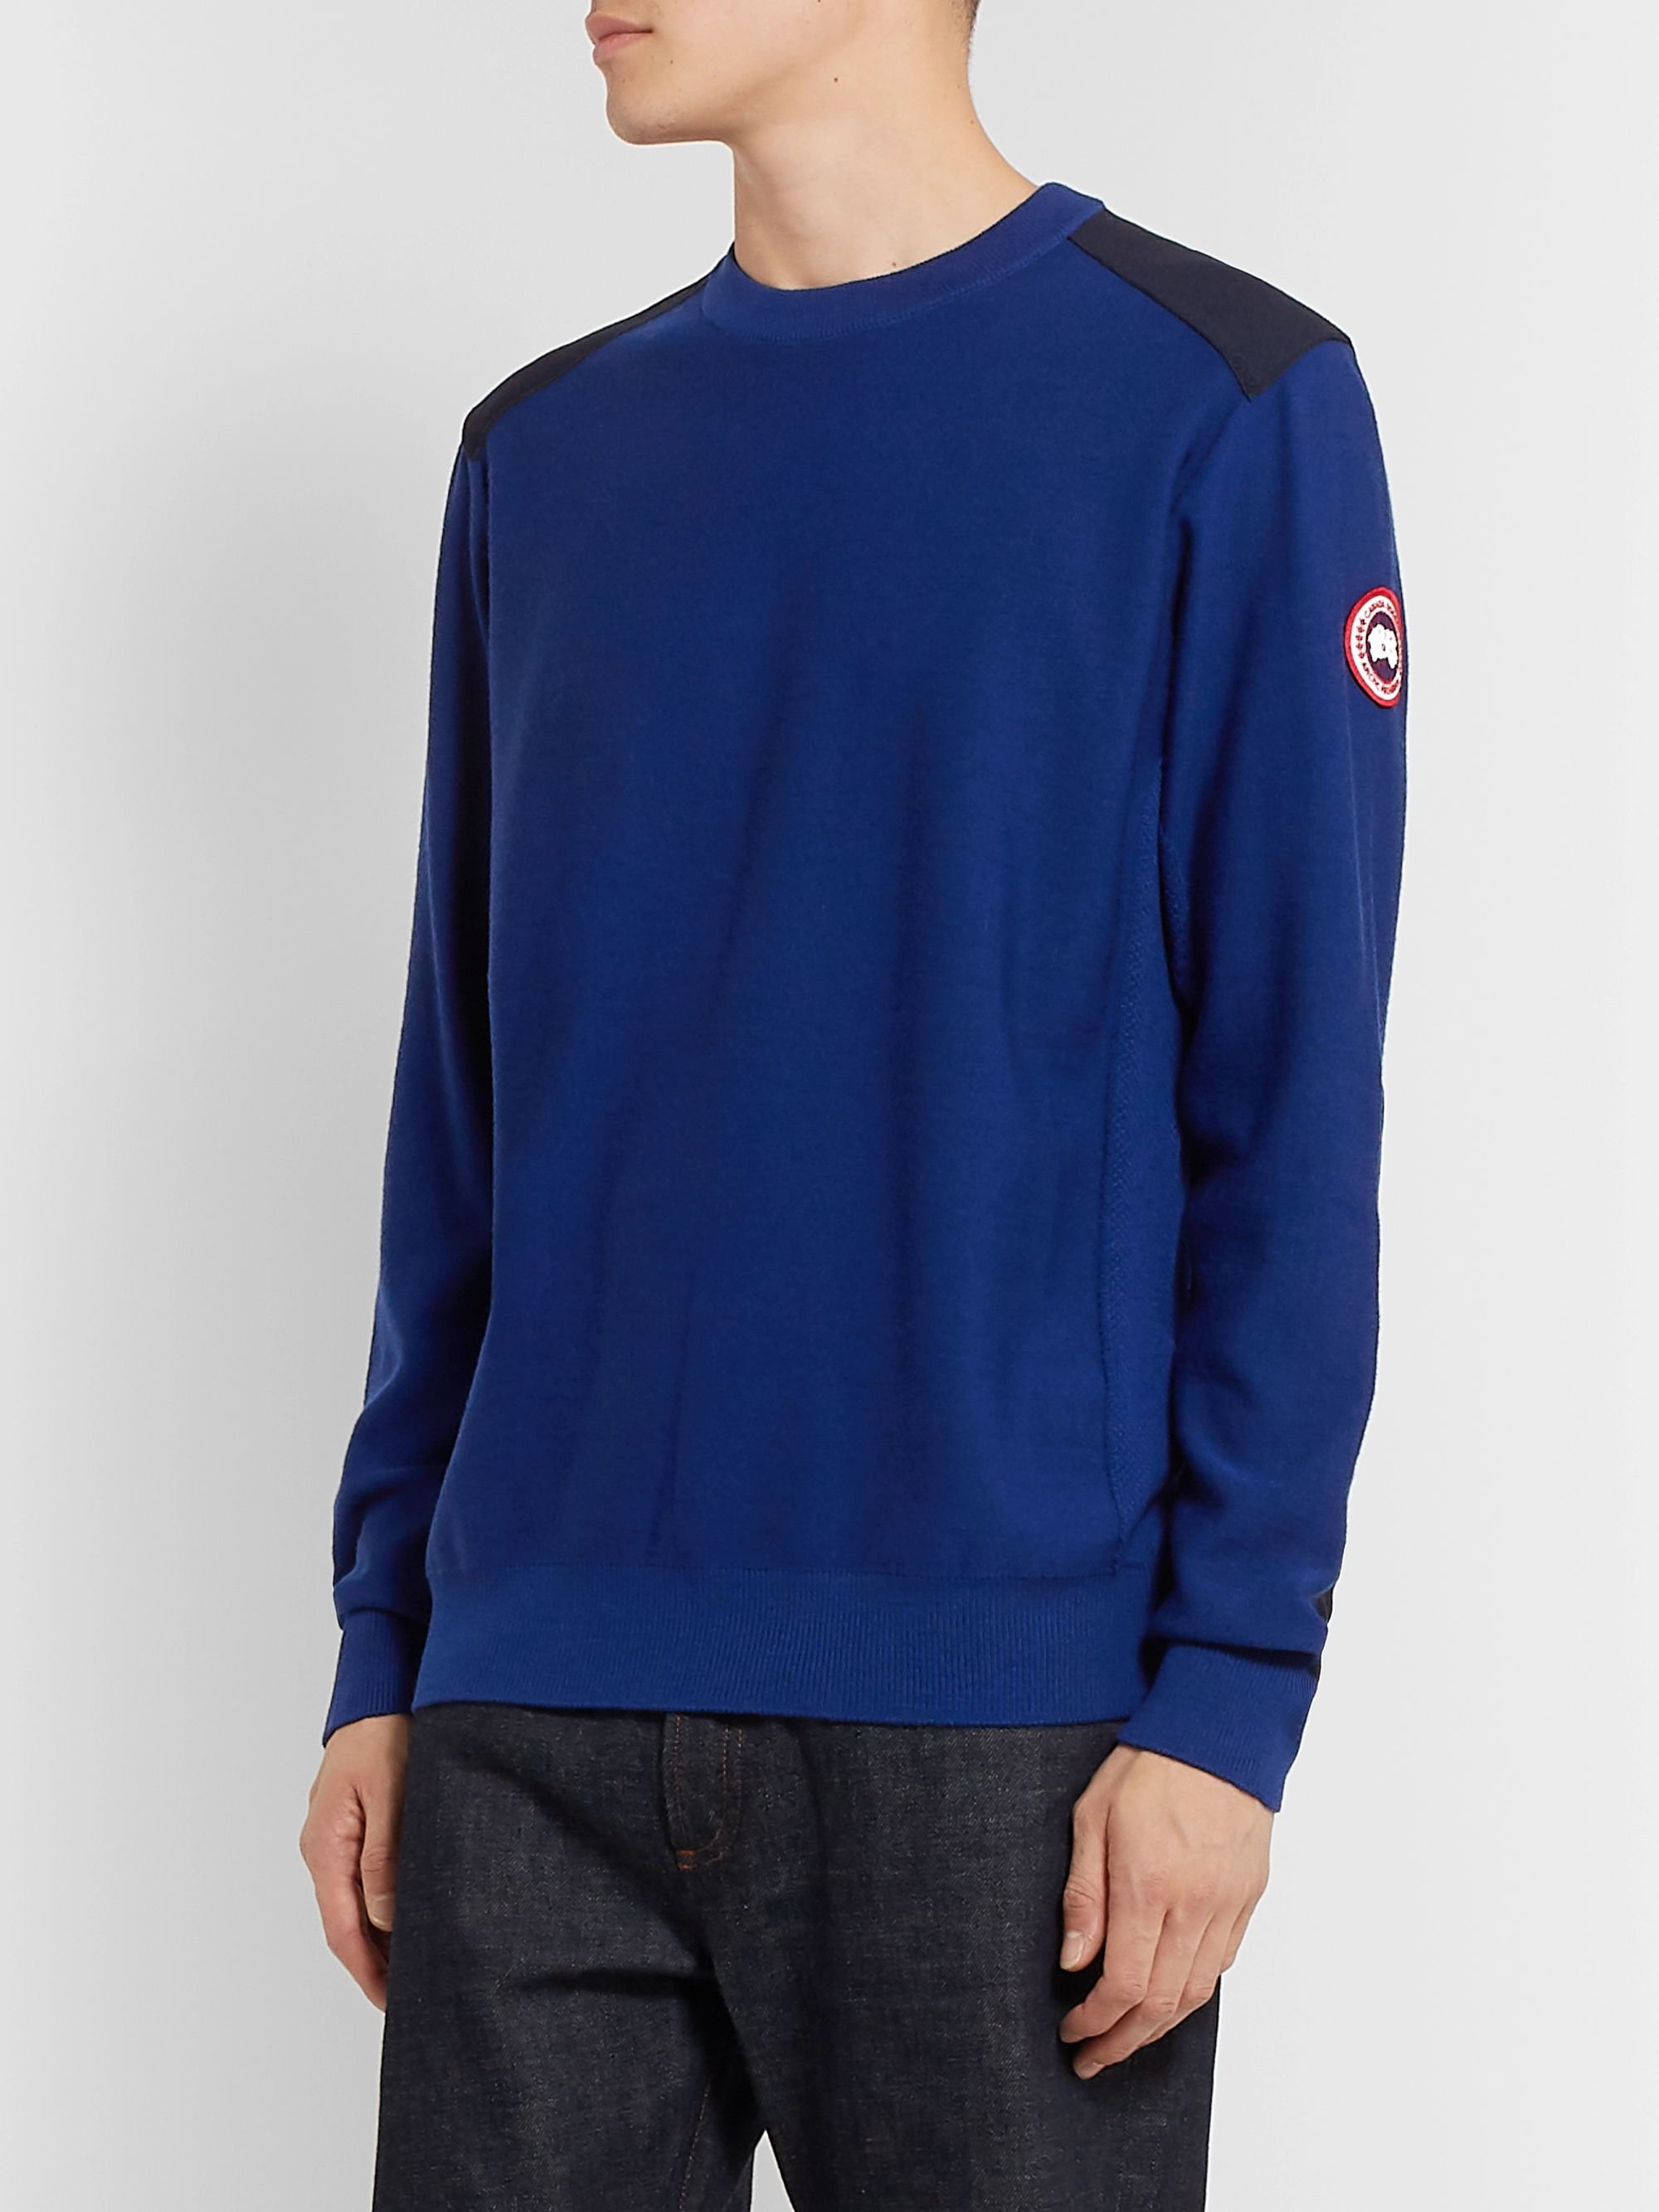 Canada Goose Dartmouth CORDURA-Panelled Merino Wool Sweater